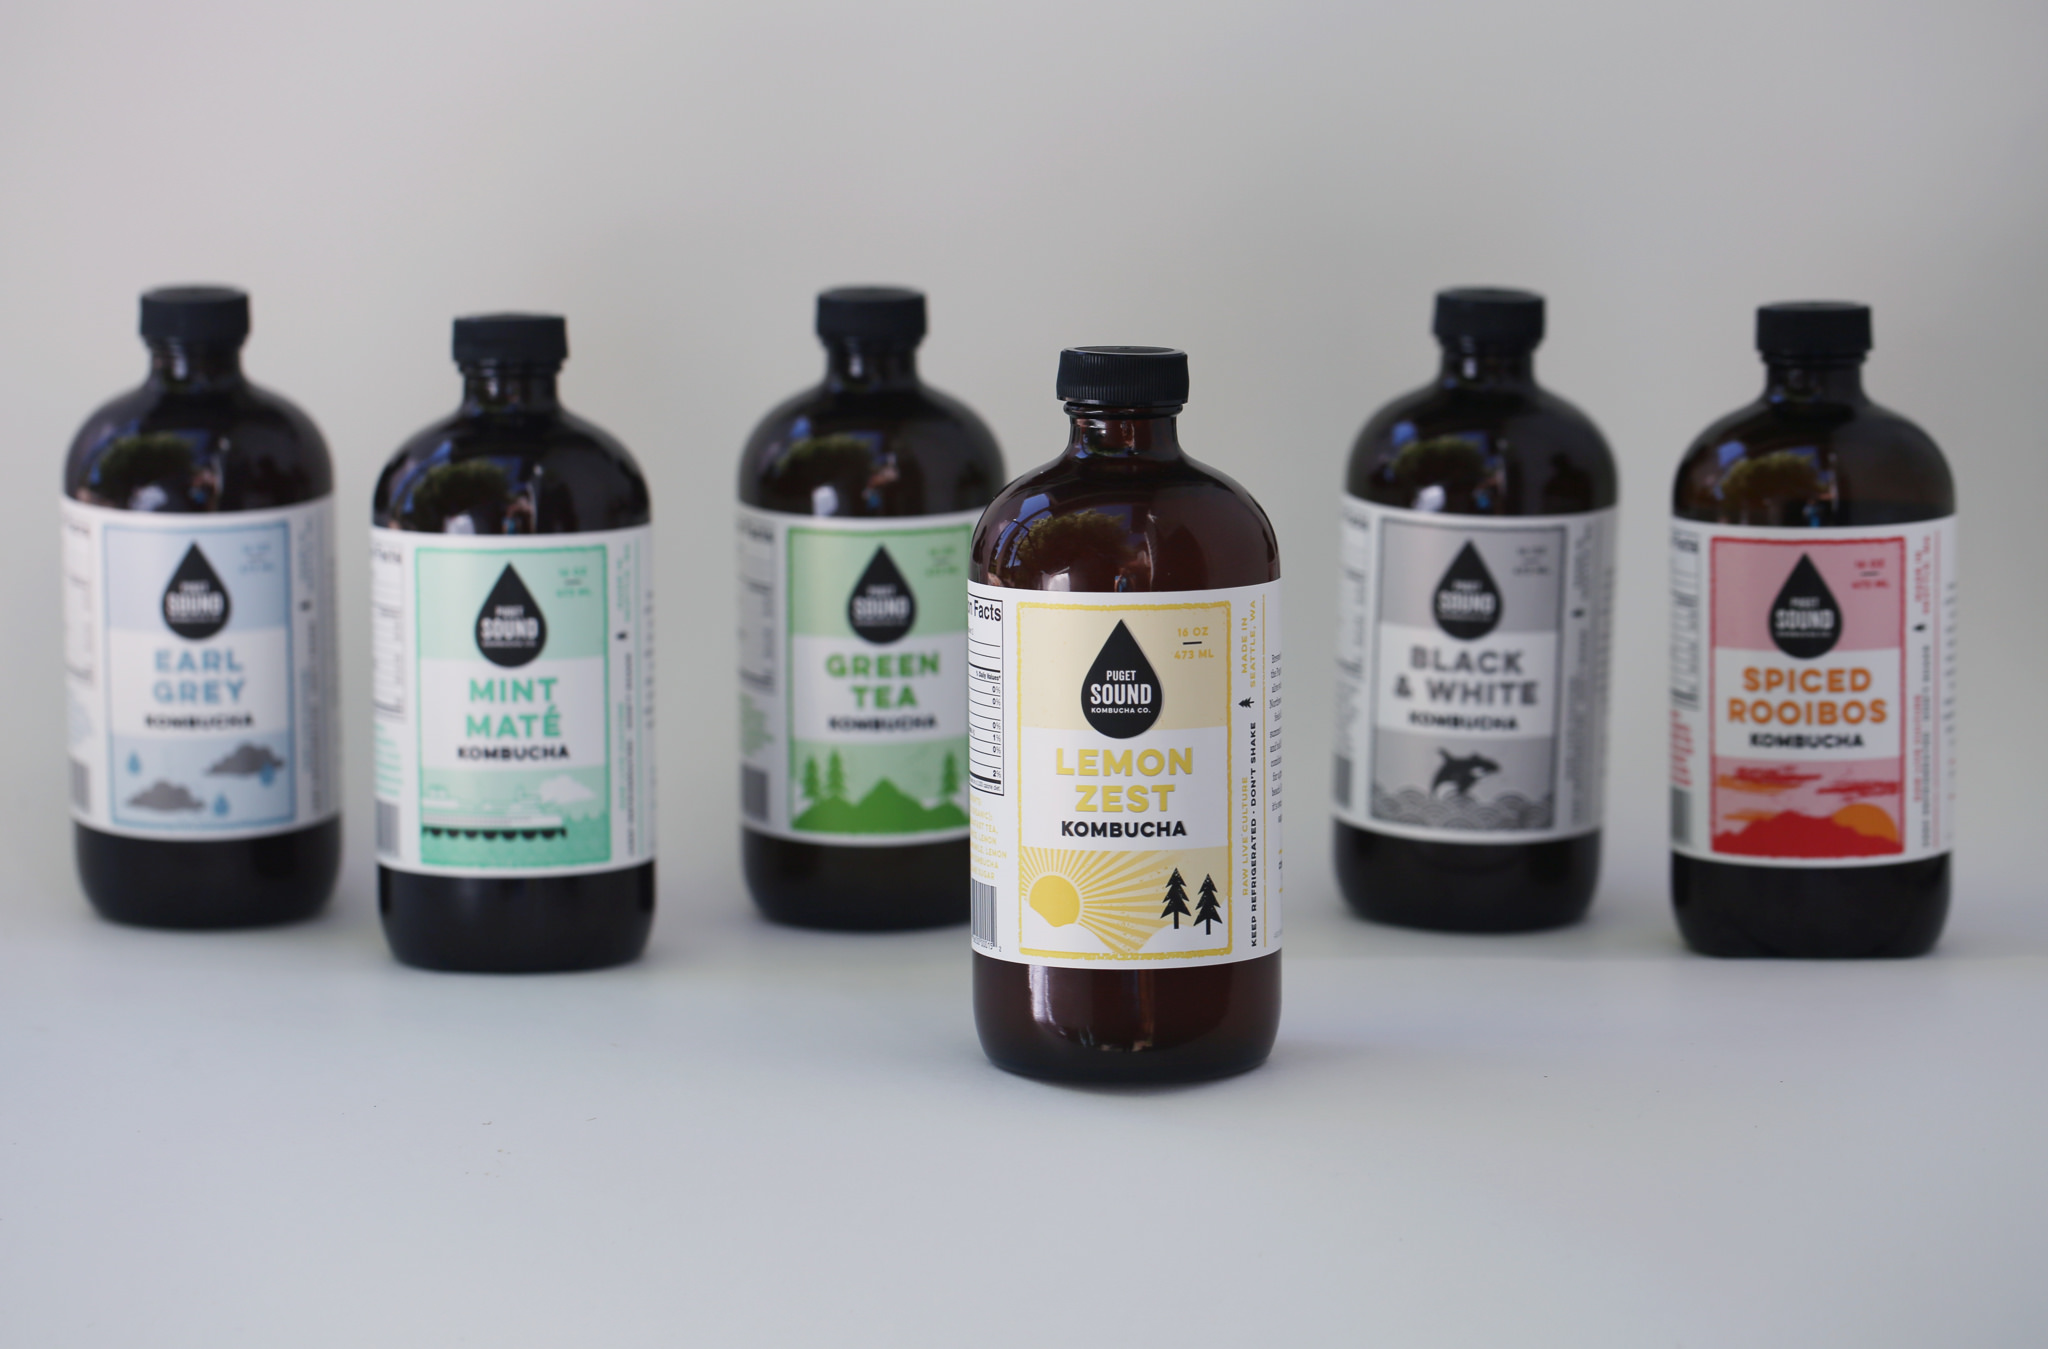 Kombucha lovers will delight in home delivery from Puget Sound Kombucha. Subscribers can get weekly or bi-weekly deliveries of their 6 different flavors. (Image: Puget Sound Kombucha){&amp;nbsp;}<p></p>